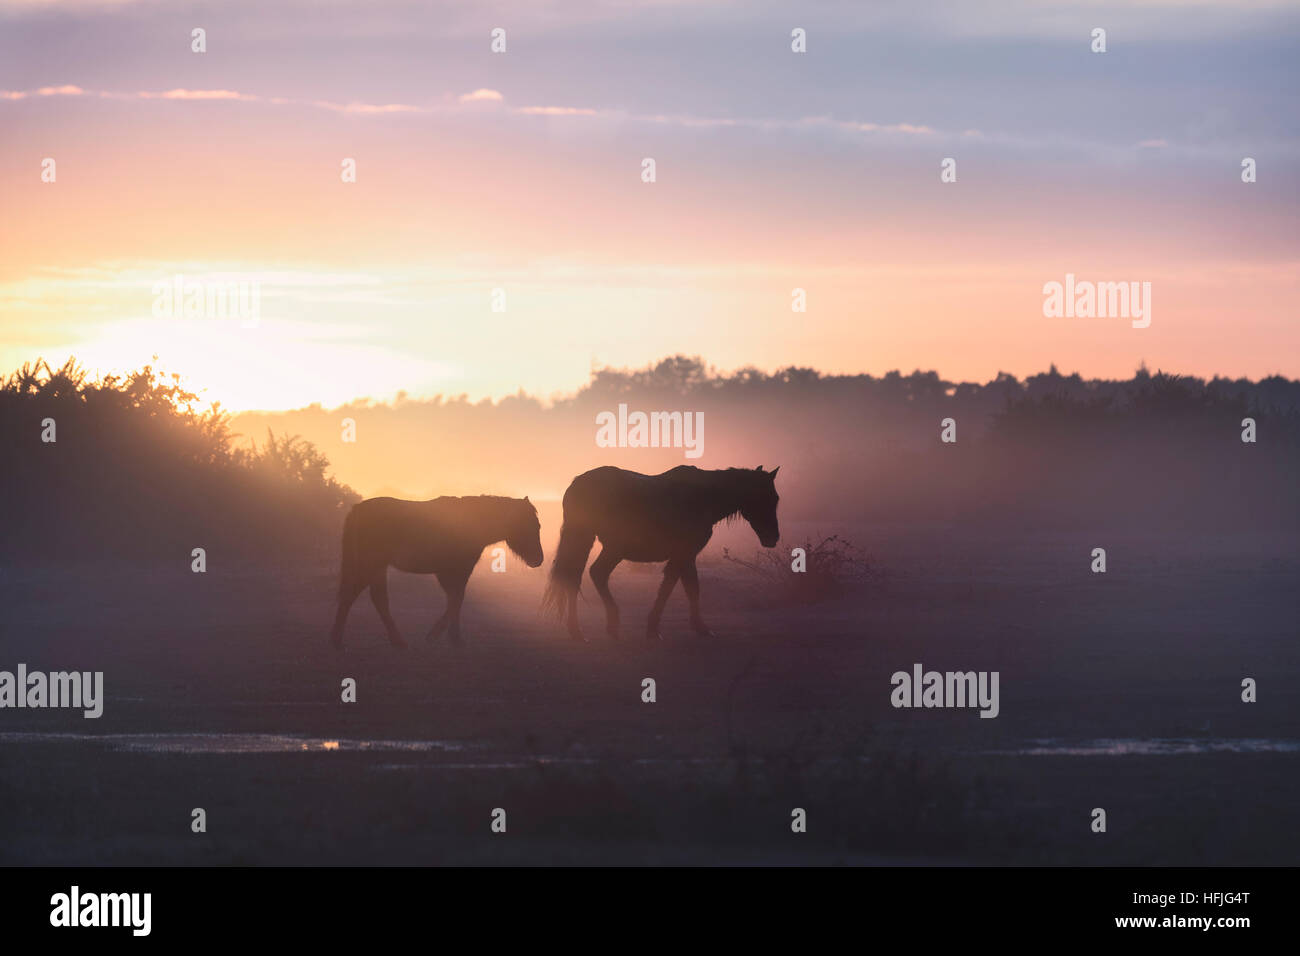 wild New Forest ponies in the sunrise in Ocknell, New Forest, Lyndhurst, Hampshire, England, UK - Stock Image